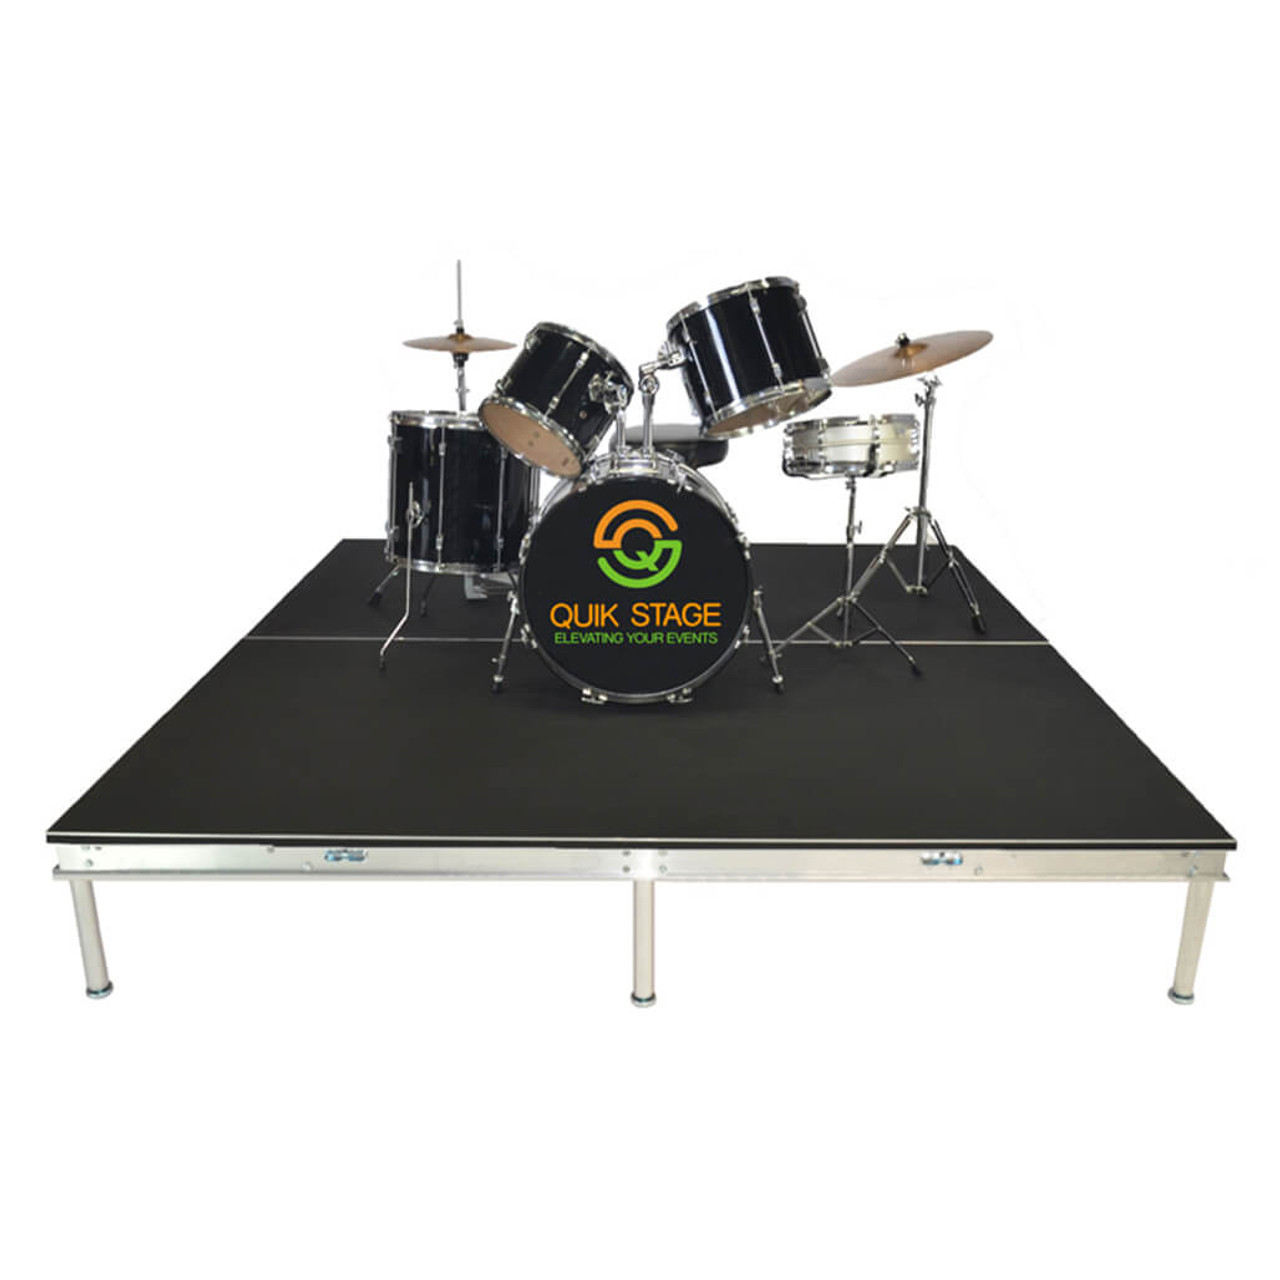 Quik Stage 8' x 20' High Portable Stage Package with Black Polyvinyl Non-Skid Surface. Additional Heights and Surfaces Available - Drum Riser without skirting